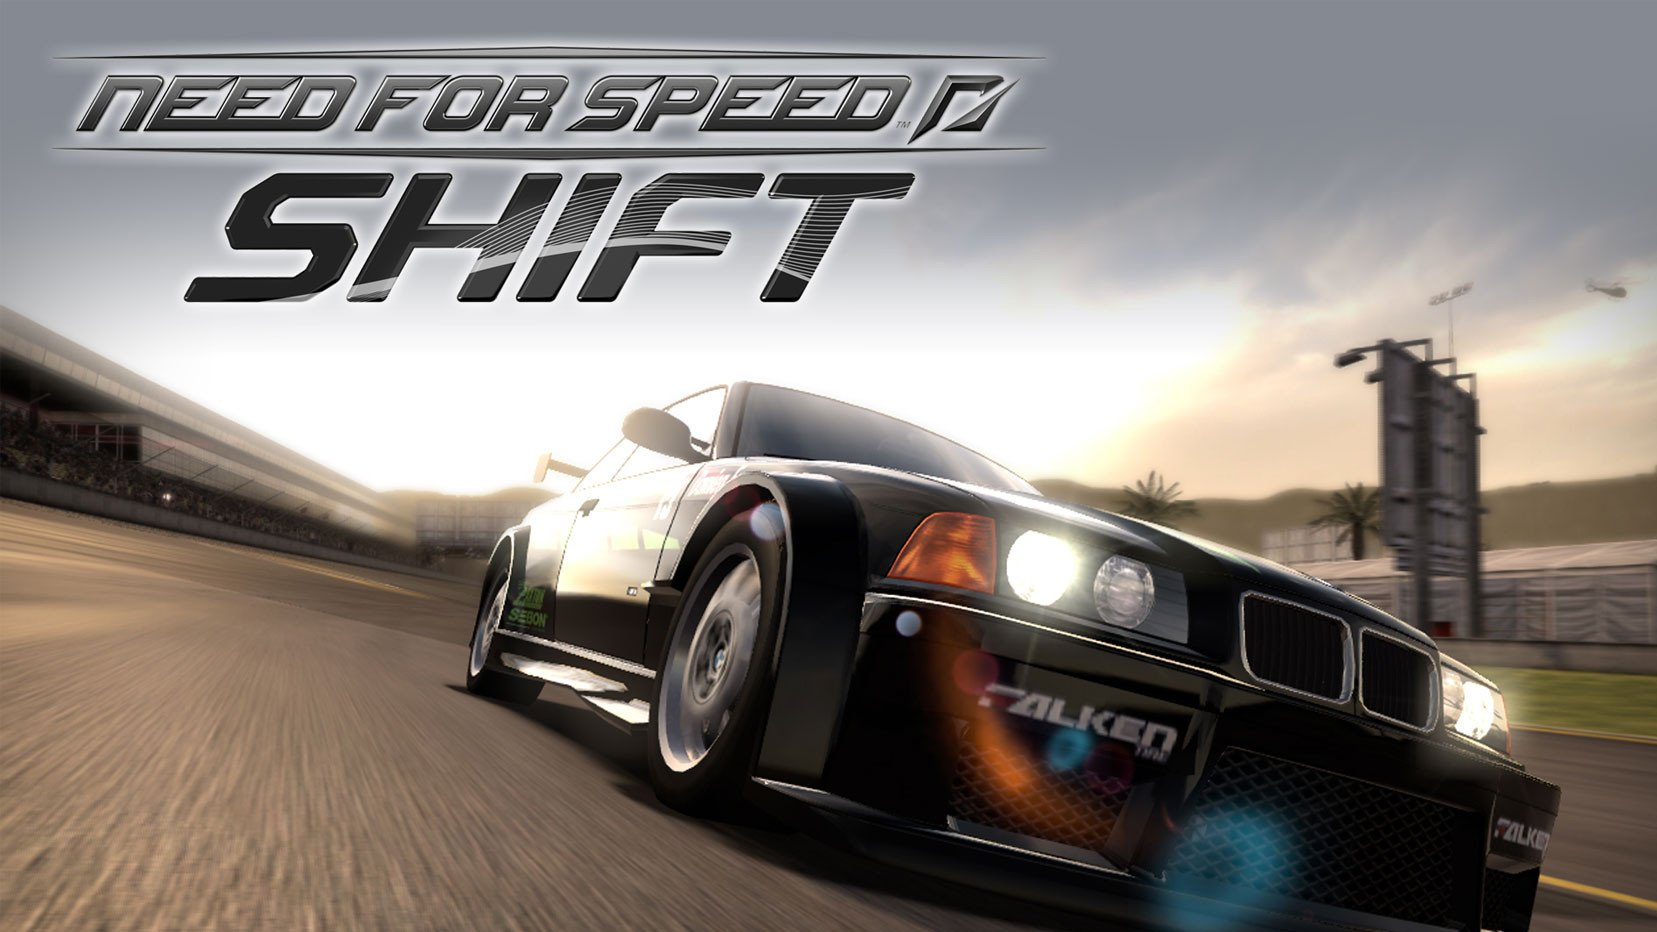 From the makers of Need for Speed: Shift